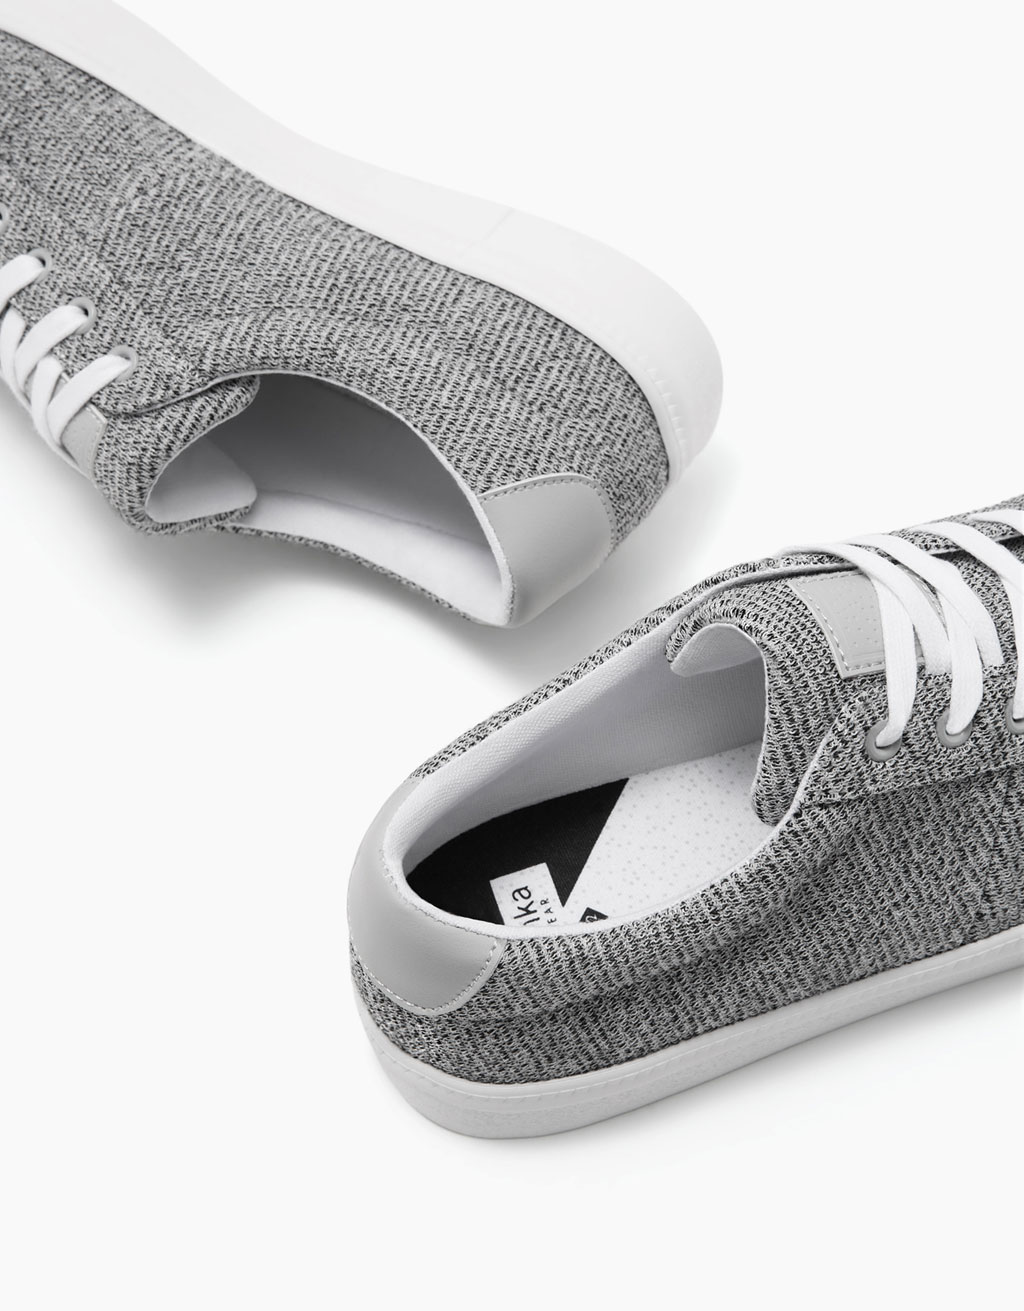 Men's flecked fabric sneakers